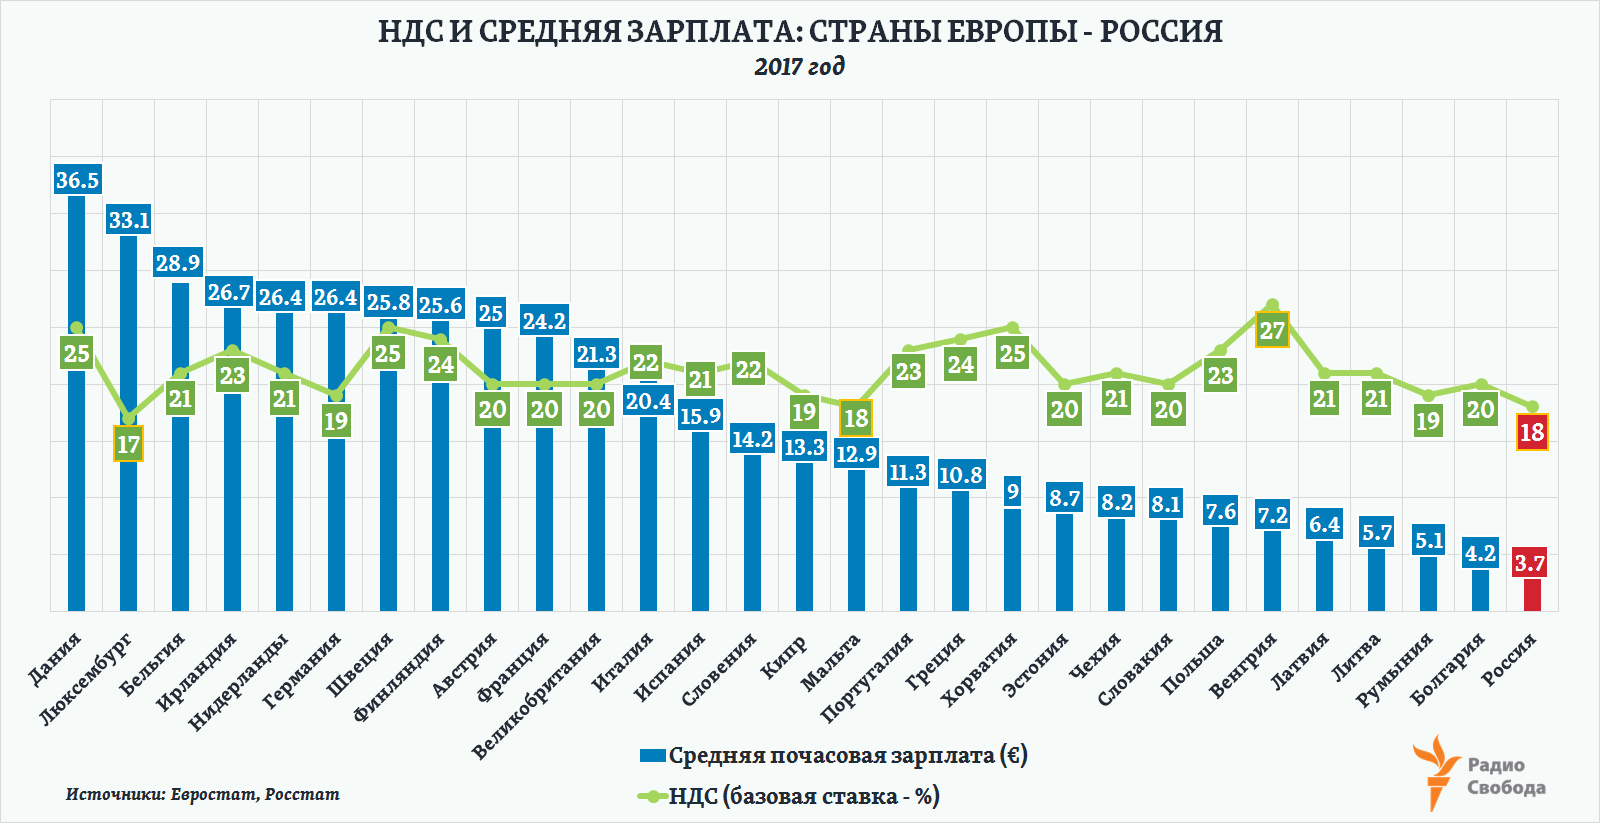 Russia-Factograph-VAT Rates-Average Hourly Wages-EU-Russia-2017